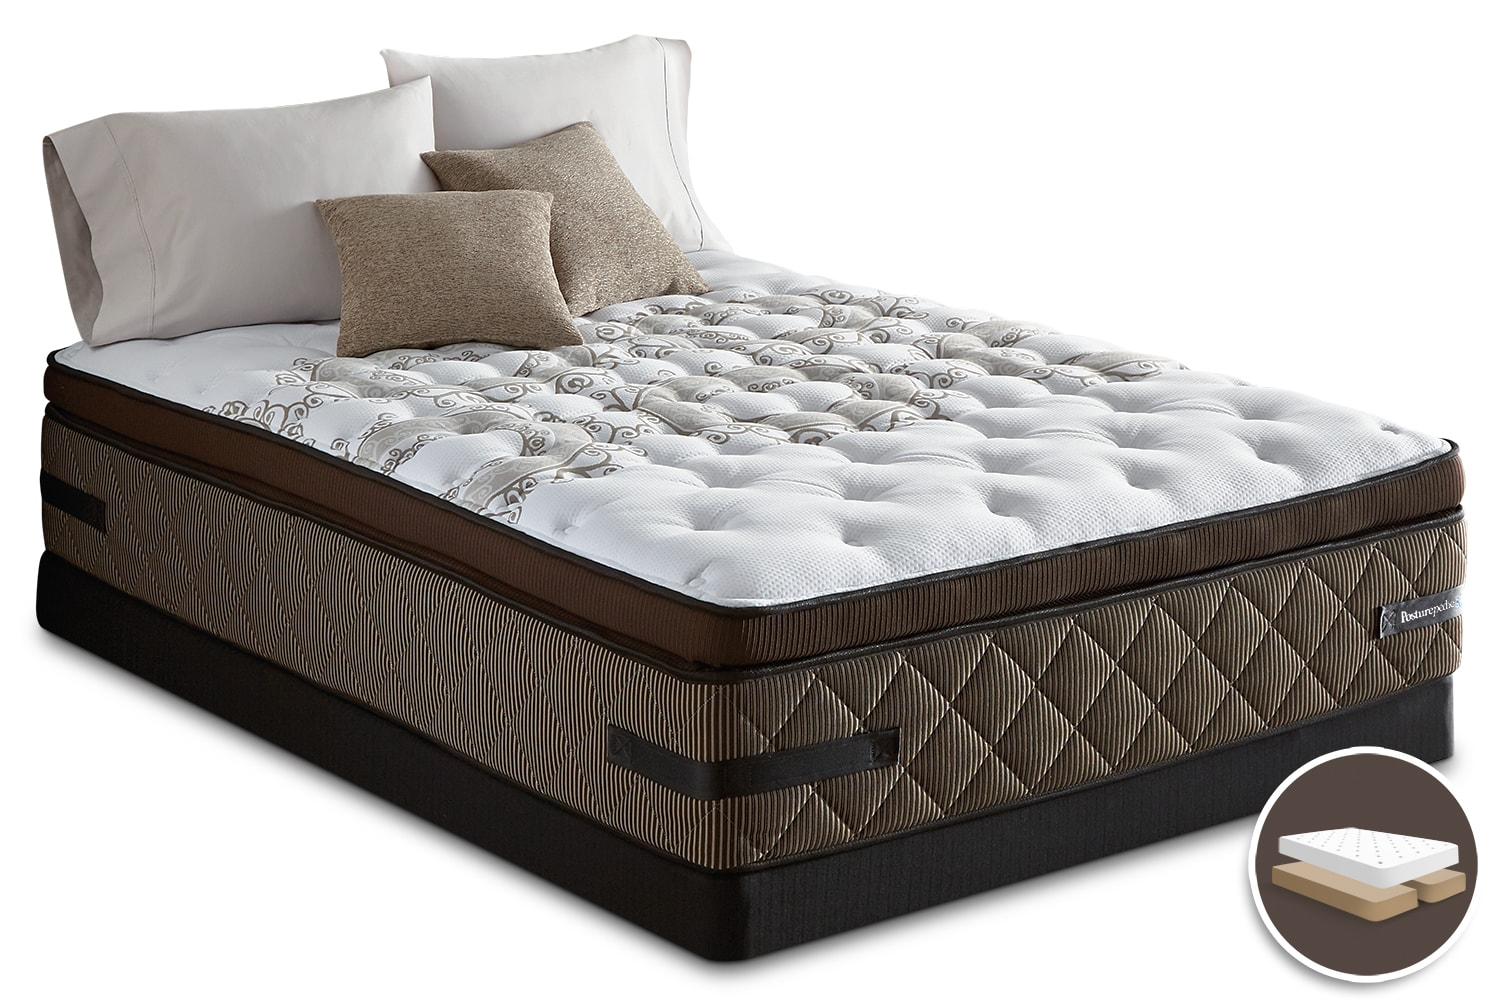 Mattresses and Bedding - Sealy Crown Jewel Sunsera Euro Pillow-Top Firm Split Queen Mattress Set